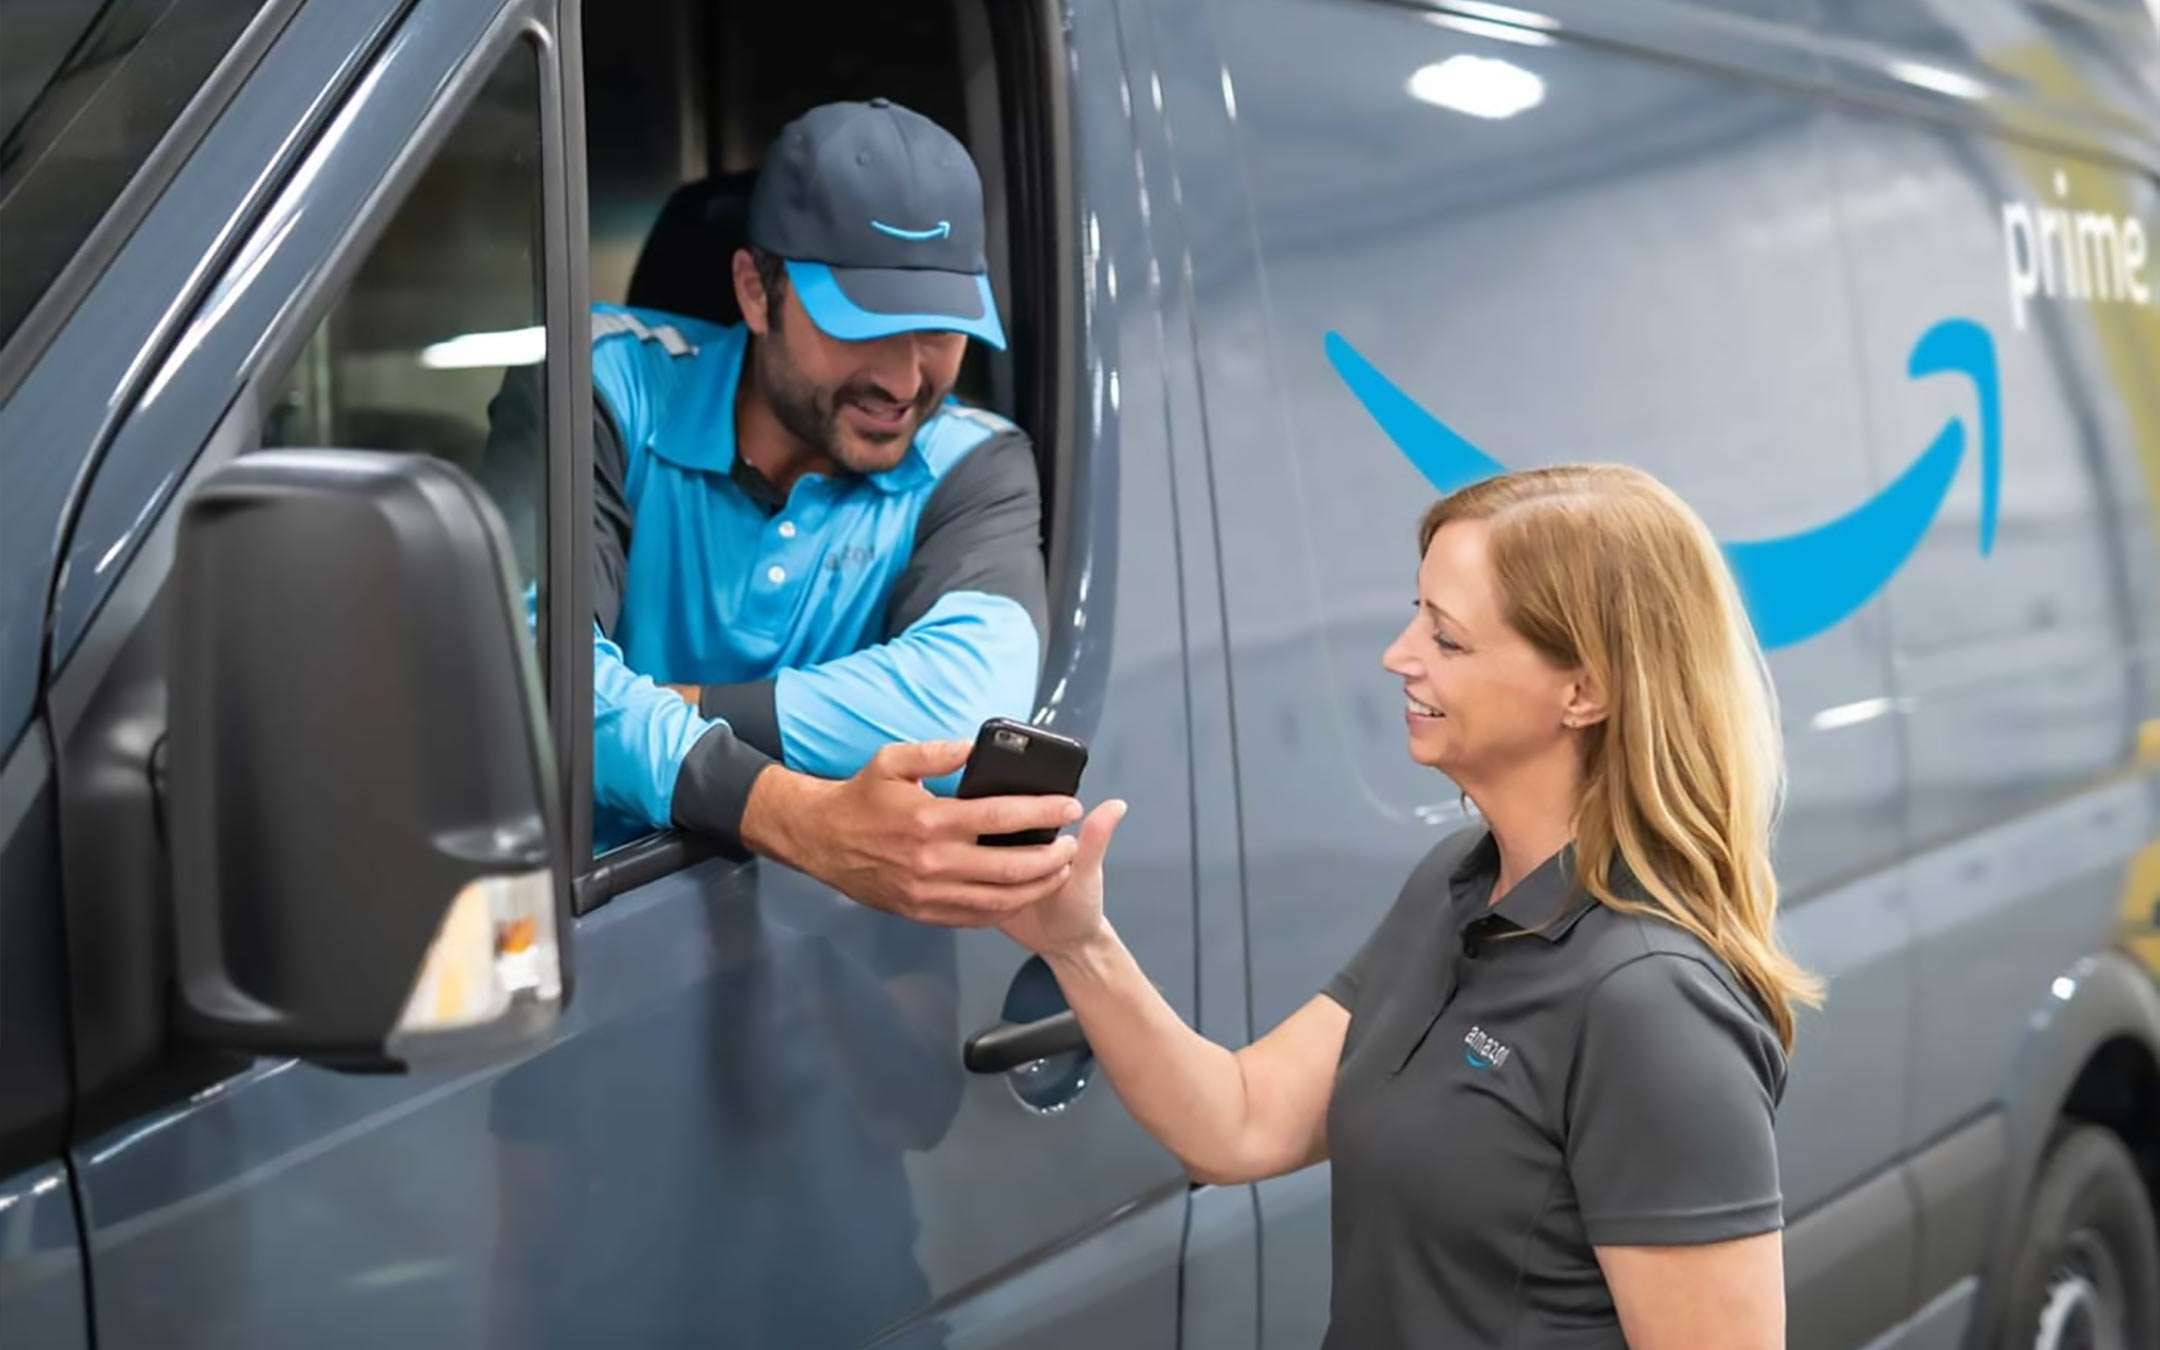 Amazon invests in new delivery providers